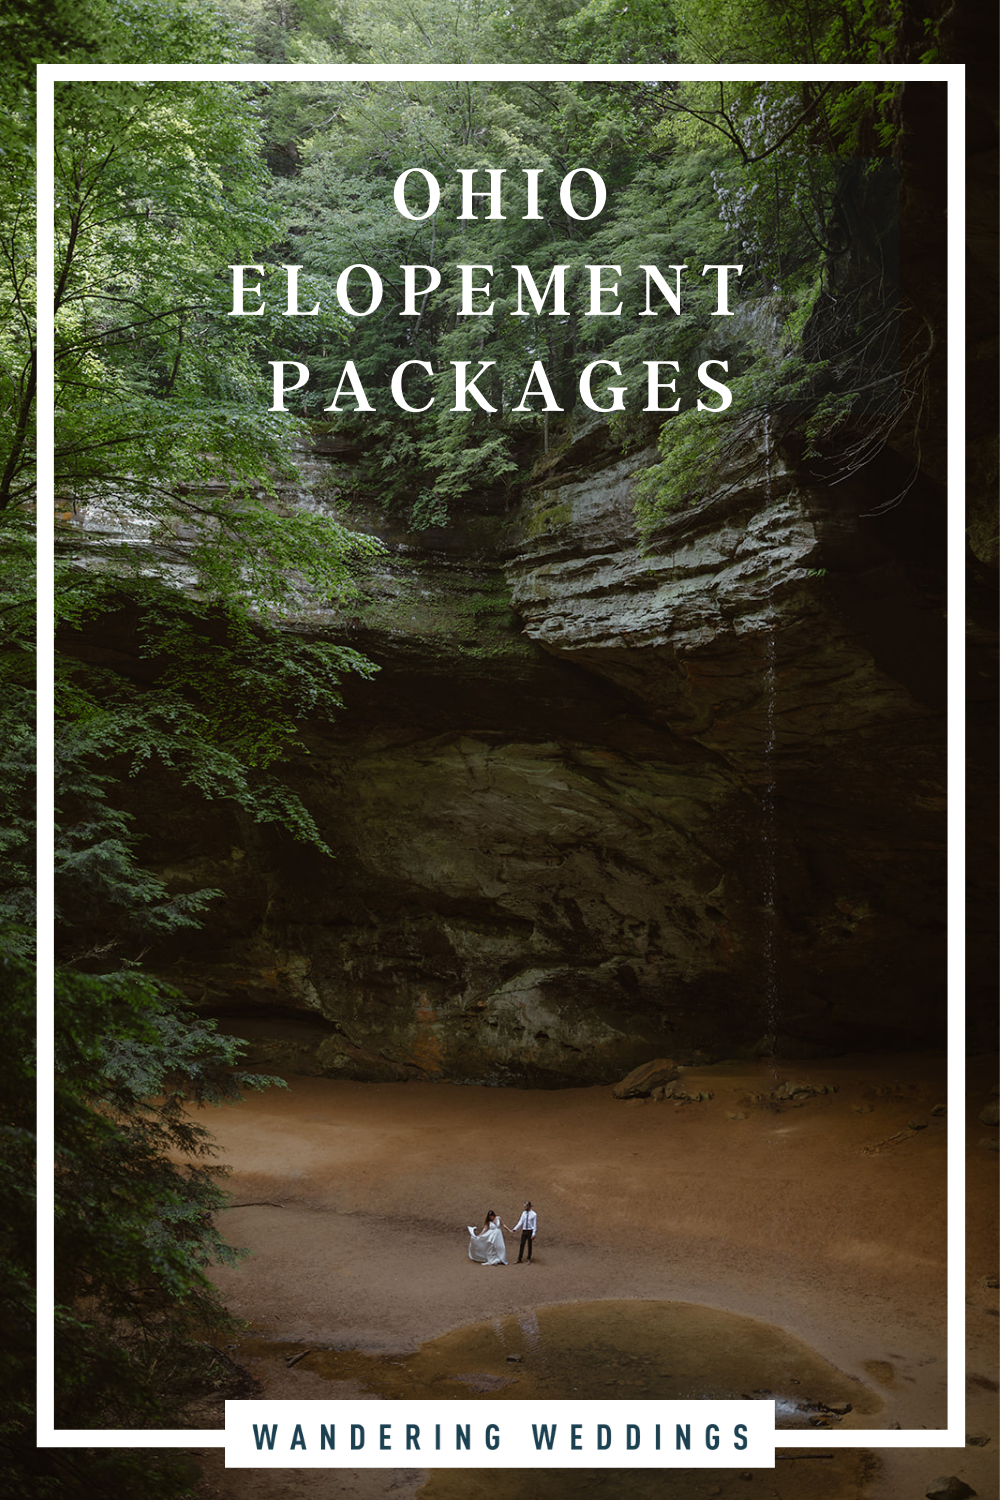 Ohio elopement packages featuring the best places to elope in Ohio and best elopement vendors